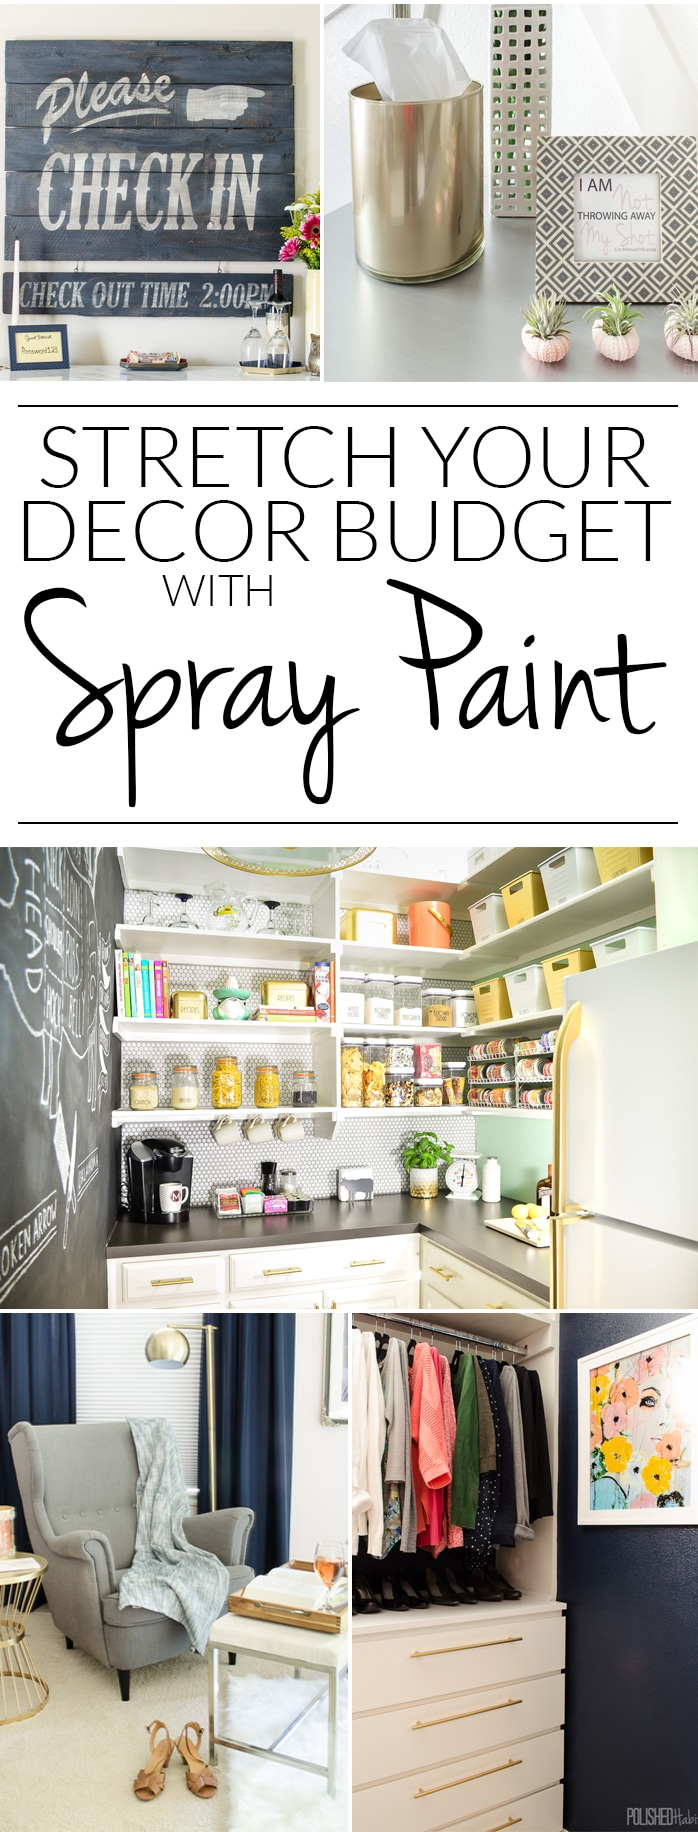 12 ways to stretch your decor budget with spray paint. Black Bedroom Furniture Sets. Home Design Ideas